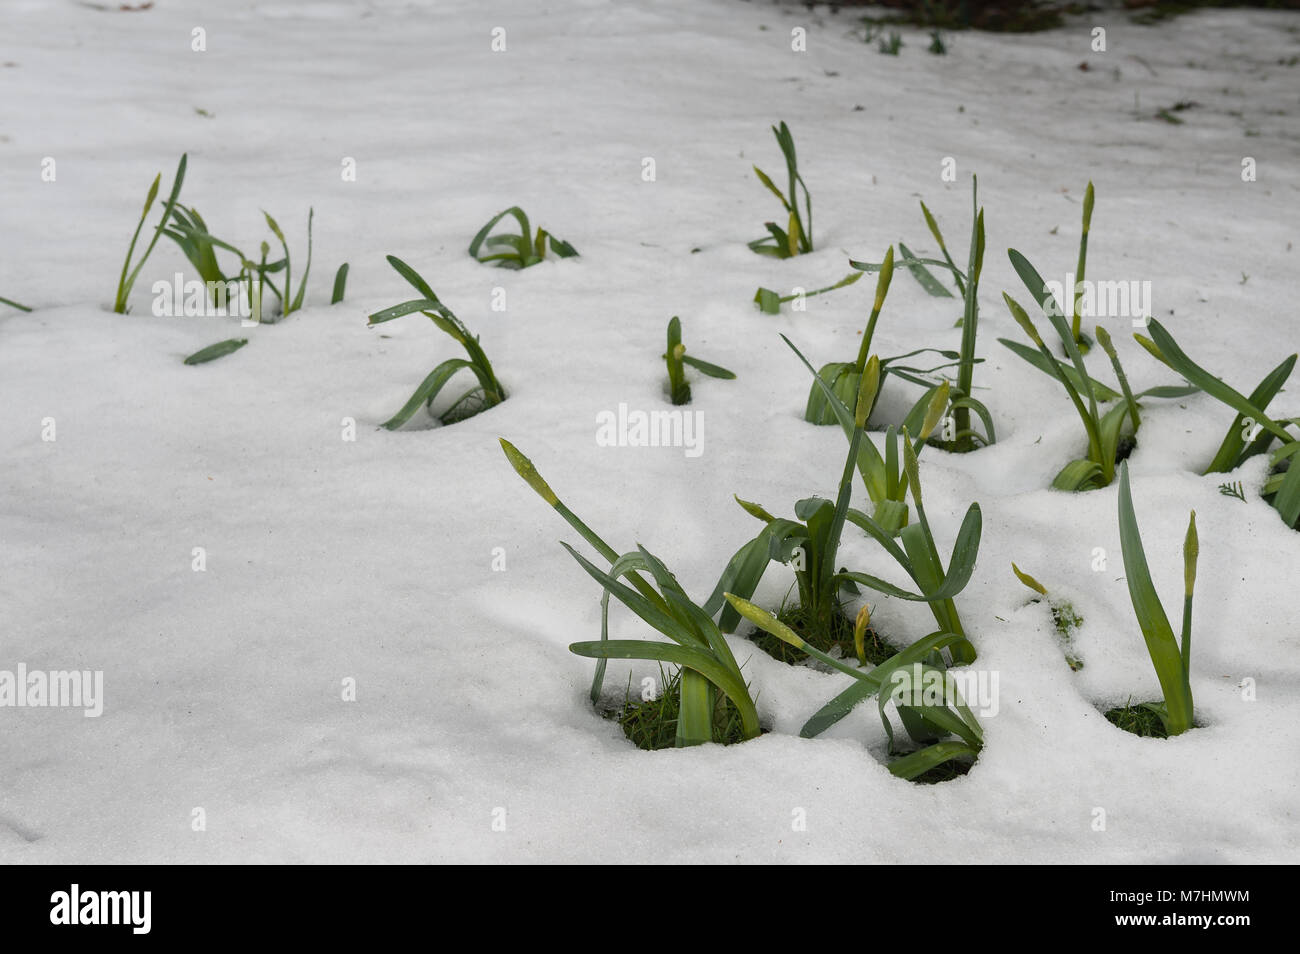 Hidden under over 40cm snow for a week melting snow is revealing spring daffodils which have yet to recover having - Stock Image